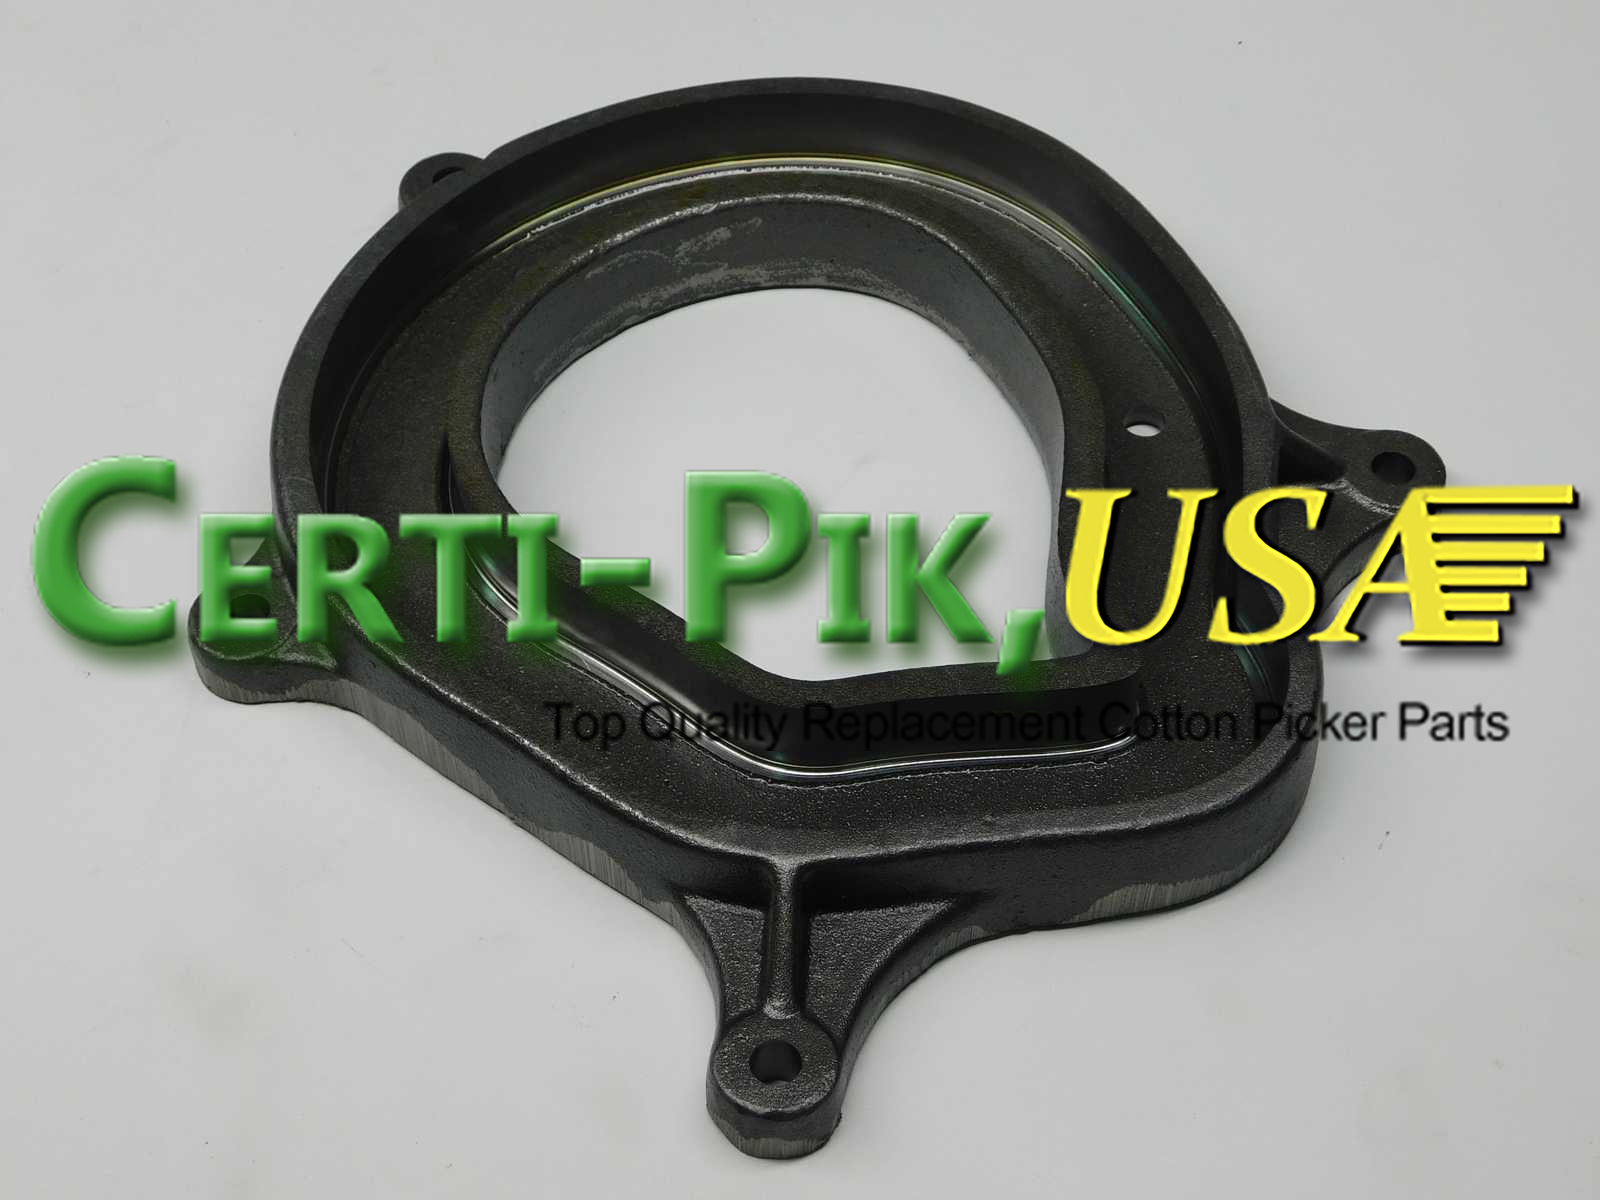 Picking Unit System: John Deere 9900-CP690 Cam Tracks and Drum Head N190601 (90601L) for Sale